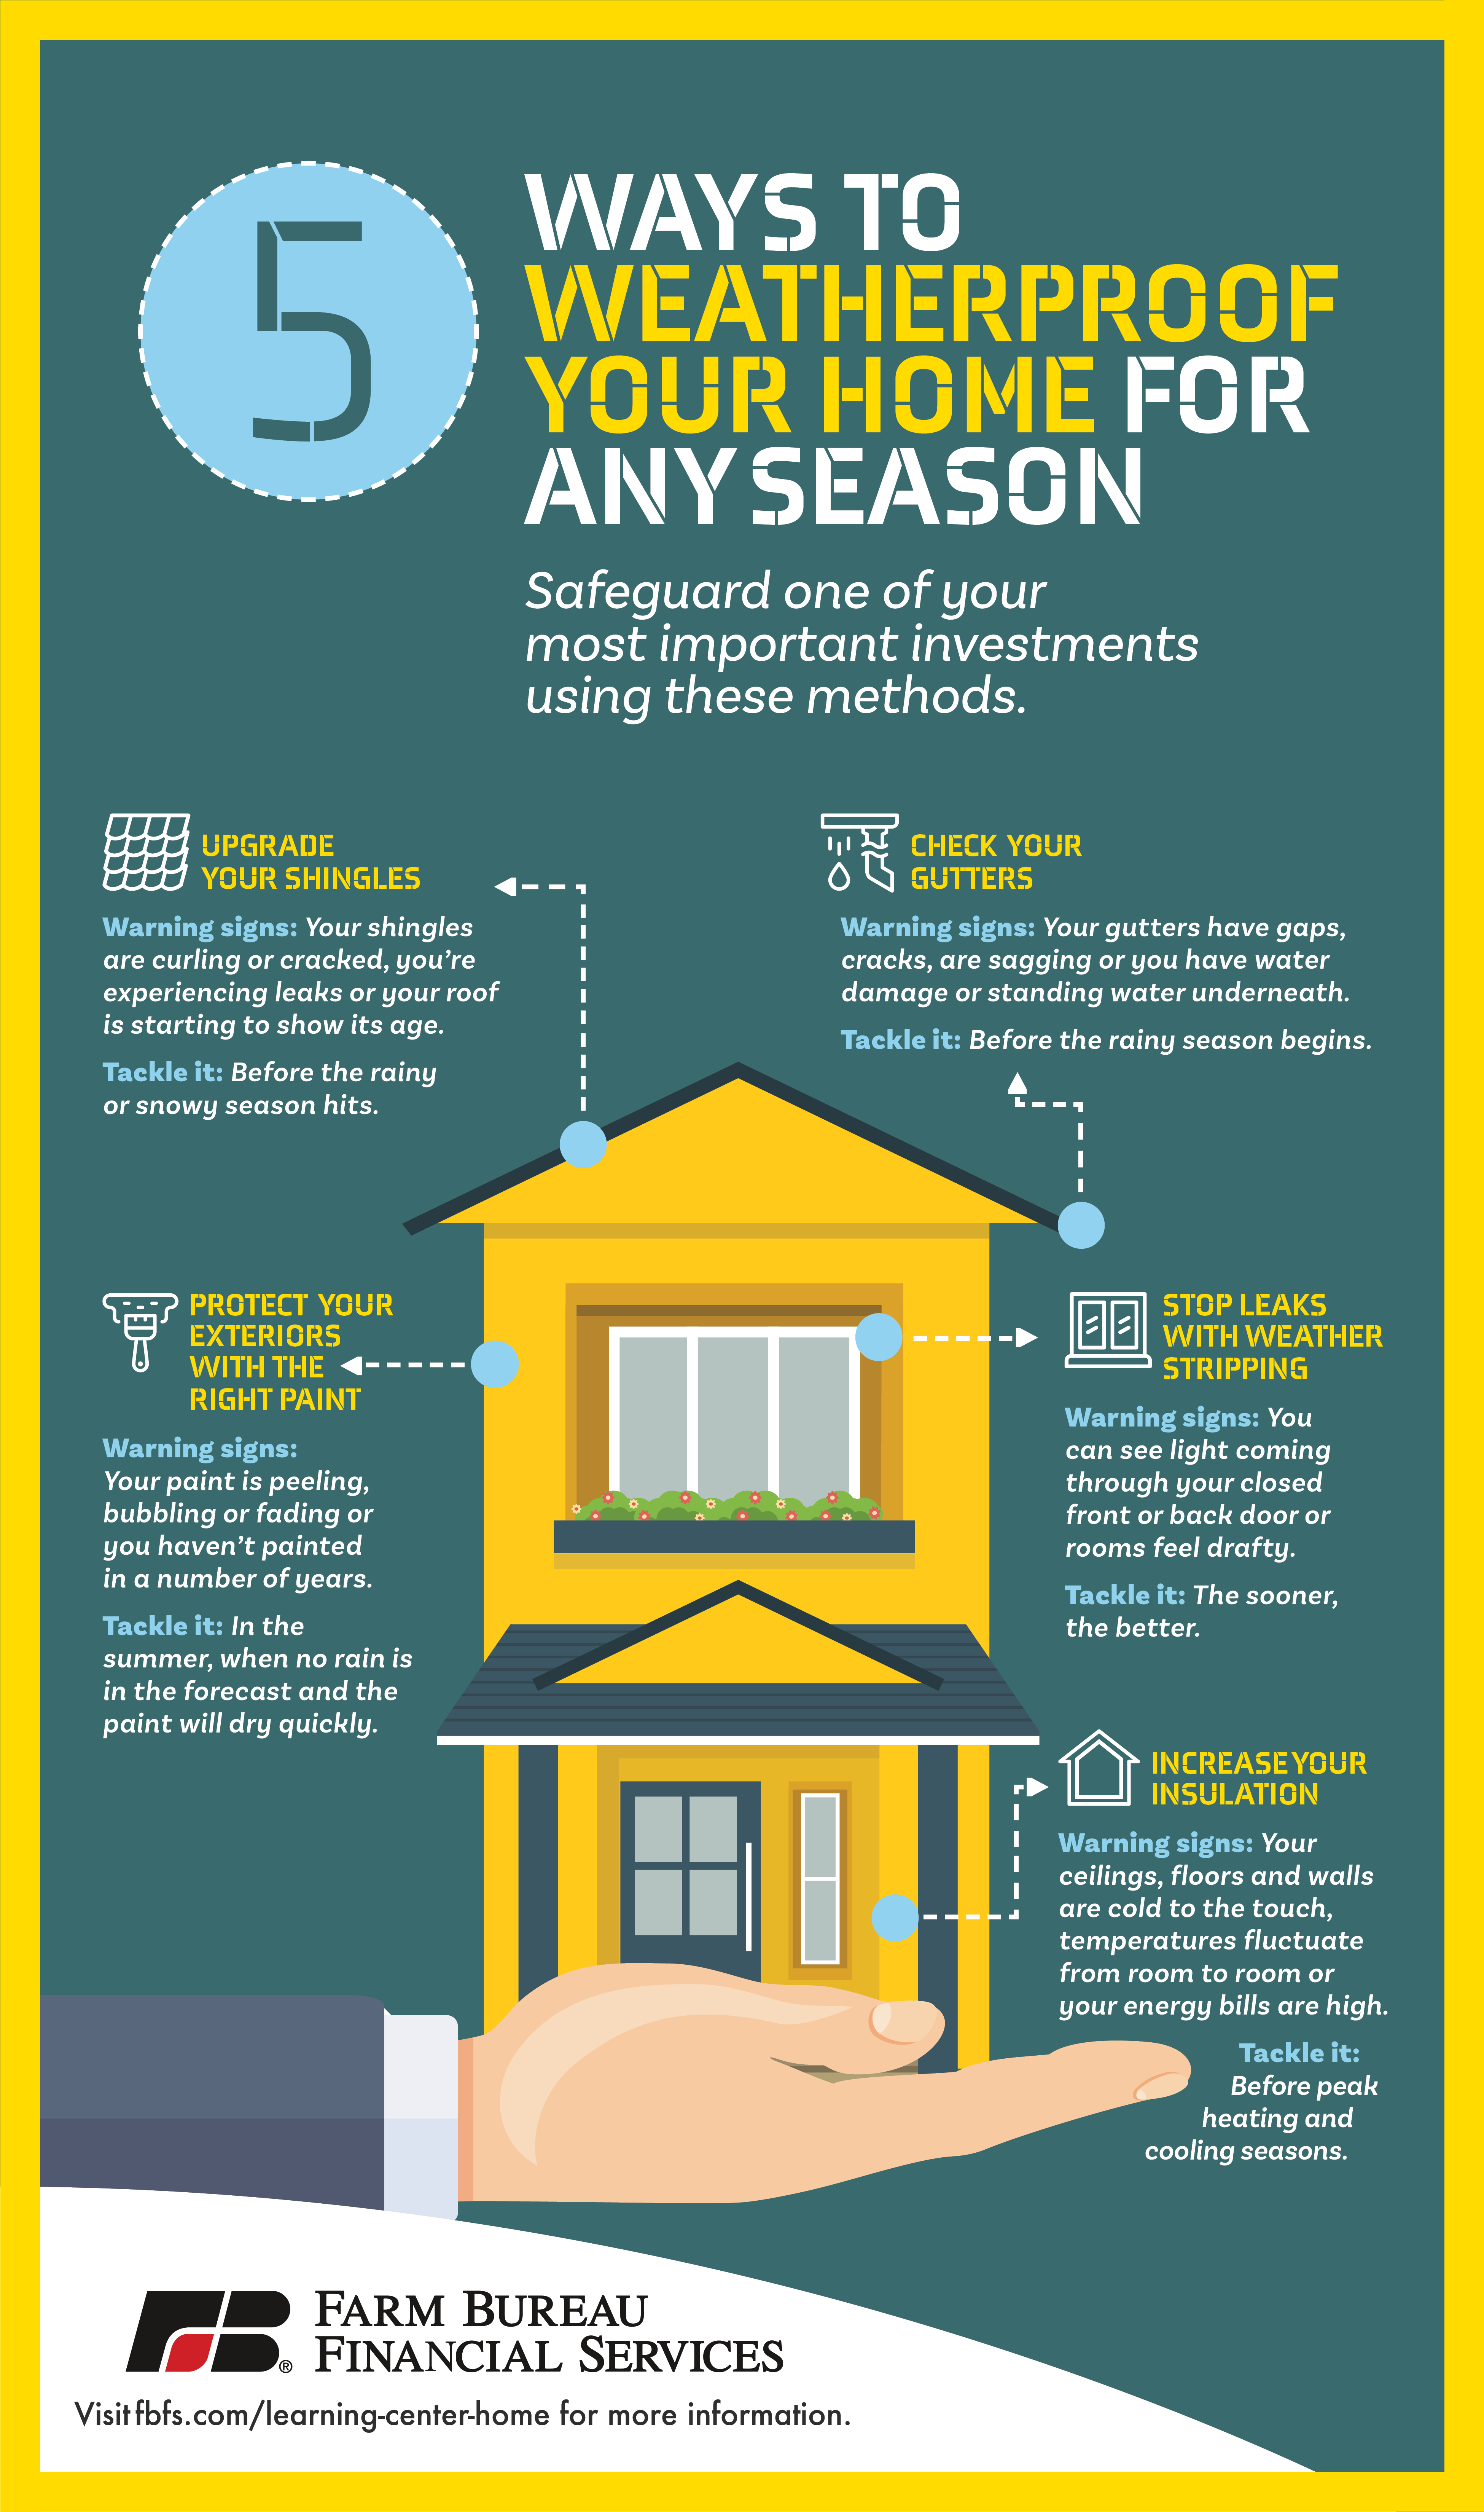 Infographic: 5 Ways to Weatherproof Your Home for Any Season